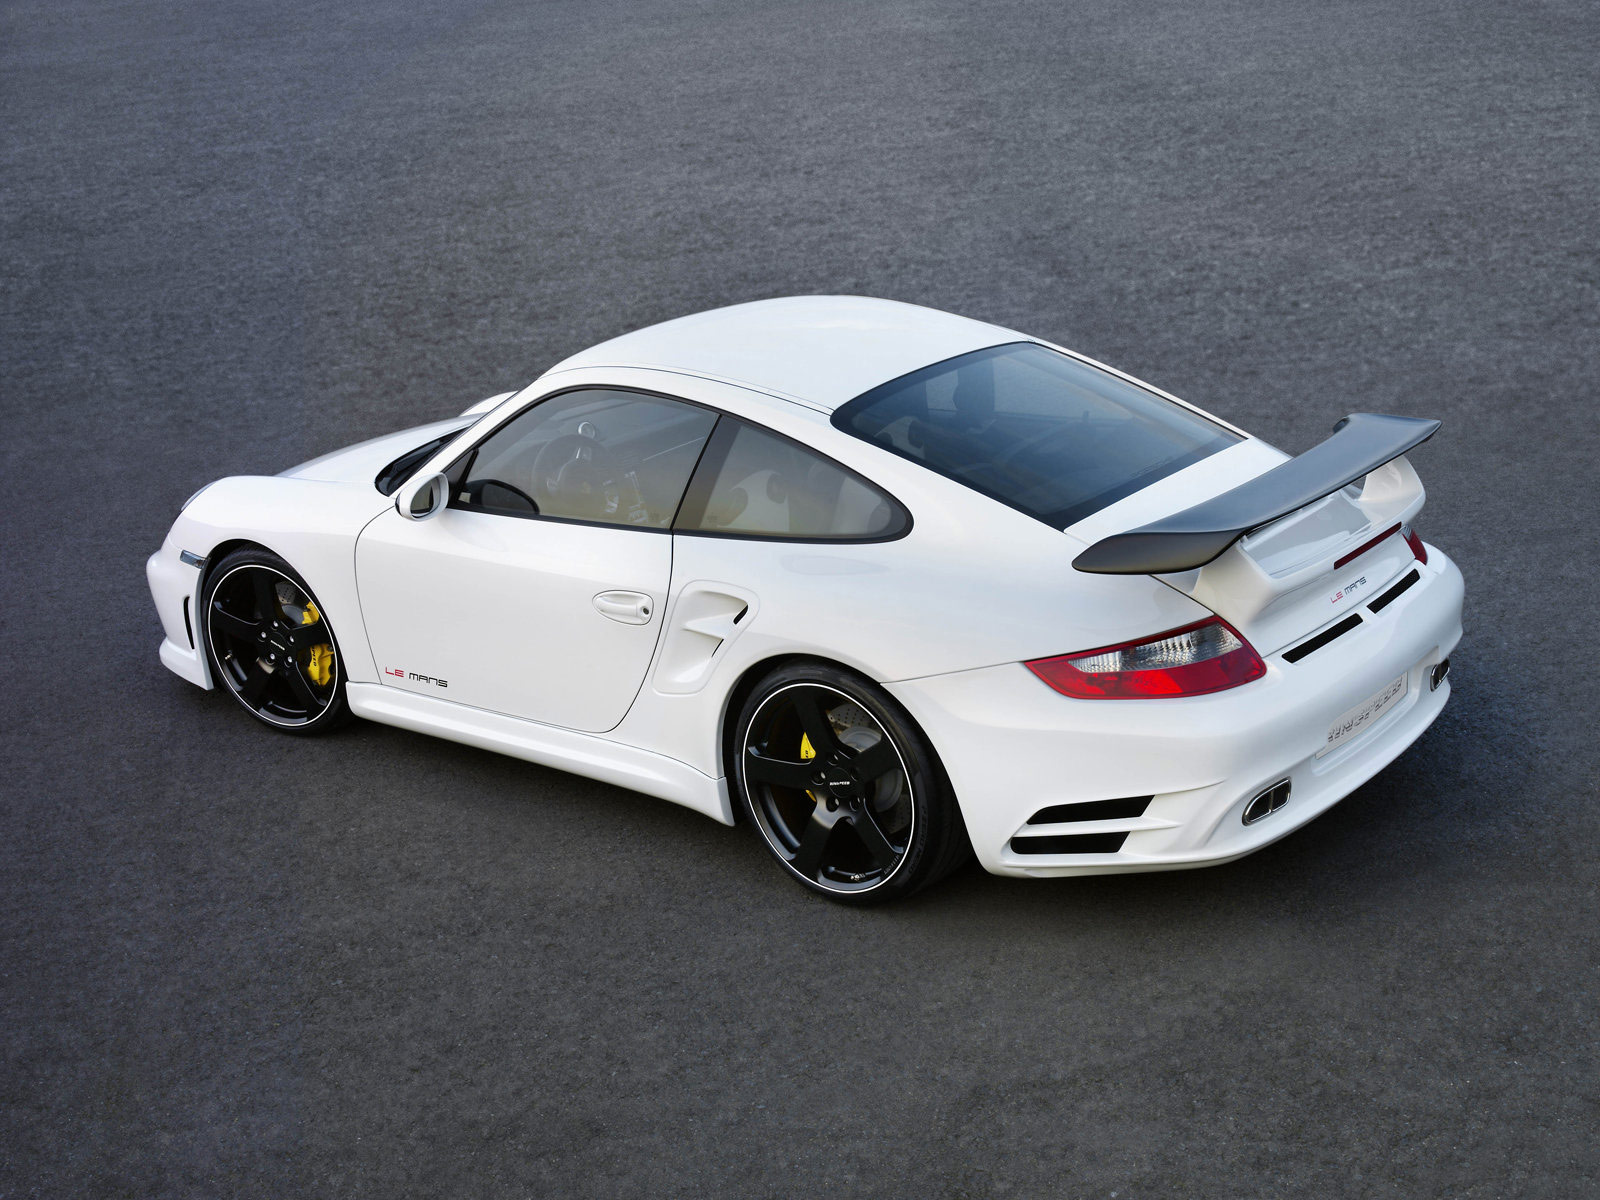 2007 rinspeed porsche 997 turbo le mans 600 pictures. Black Bedroom Furniture Sets. Home Design Ideas